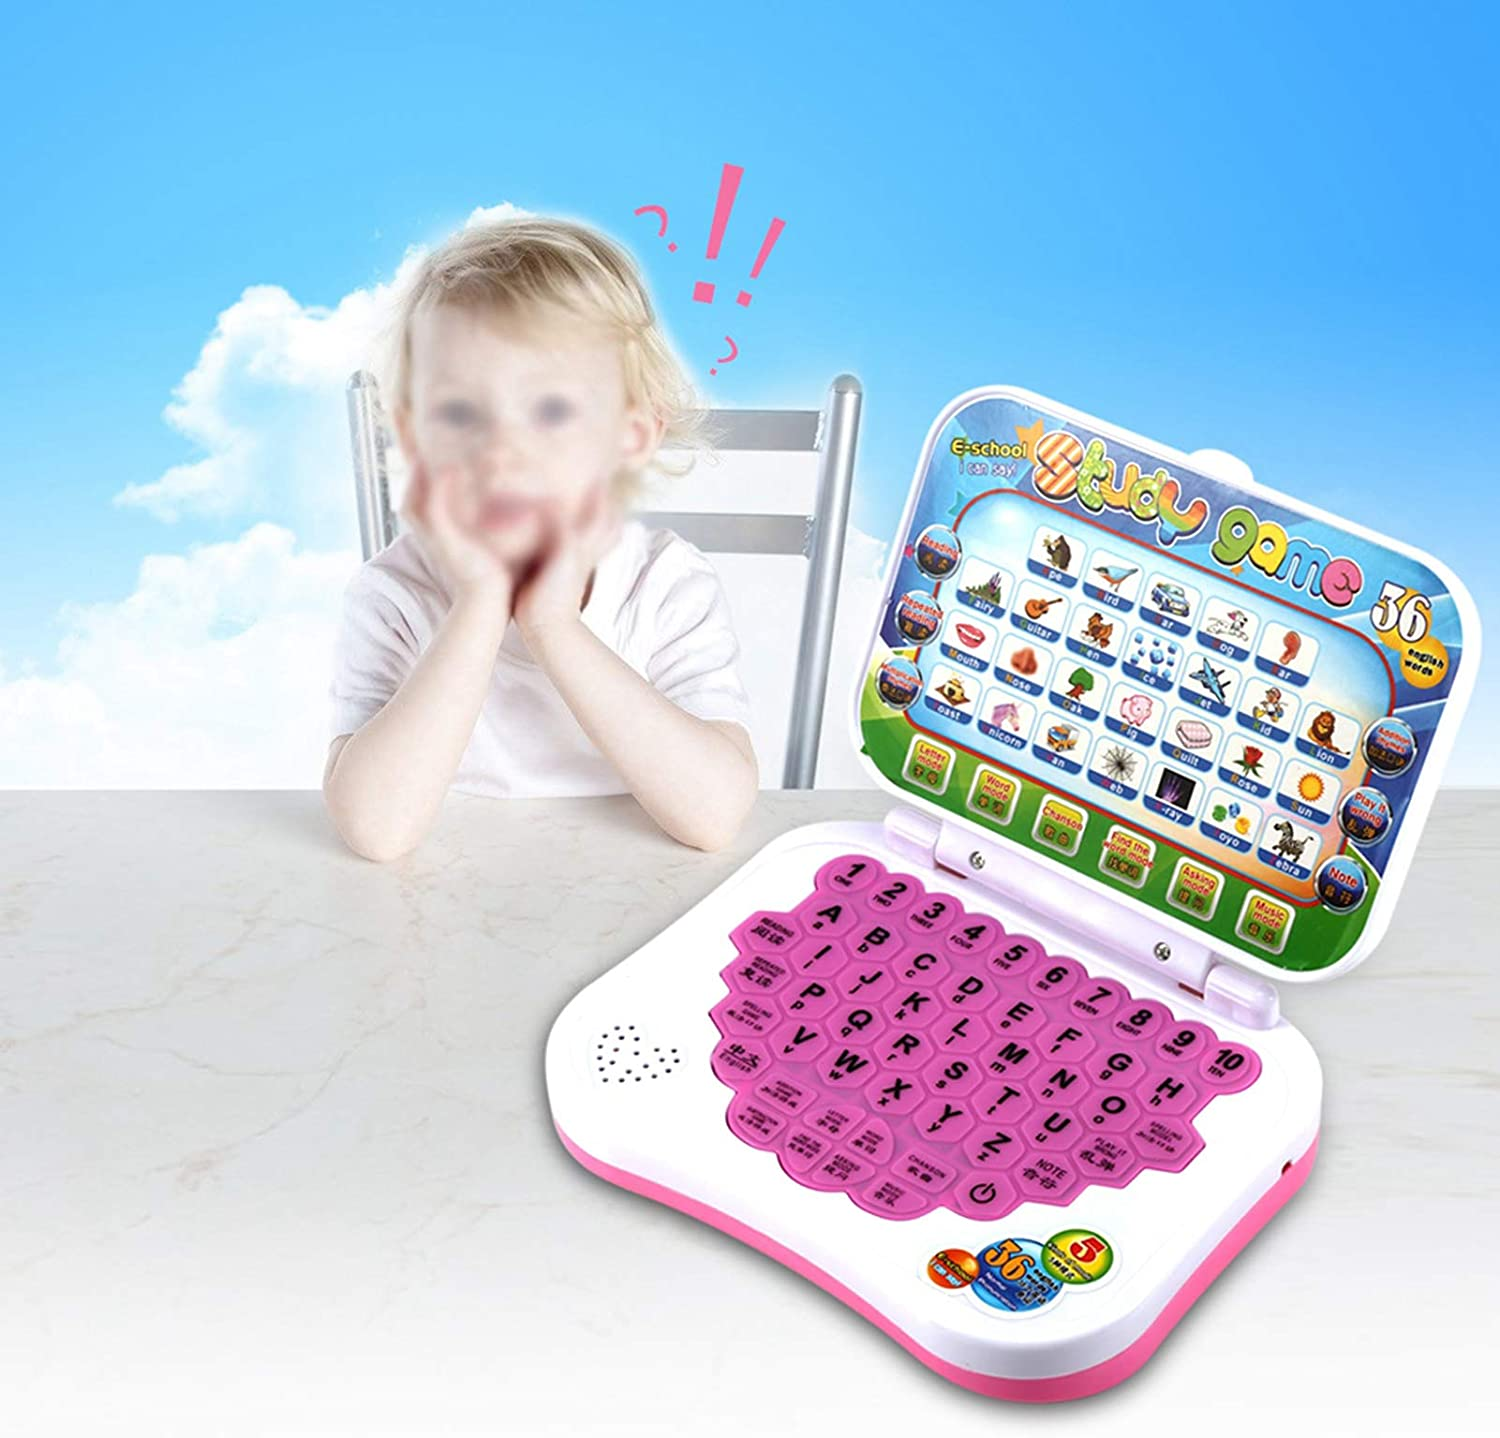 Jacksing Baby Laptop Smart Easy Outstanding Ea to Practical Al sold out. Convenience Use